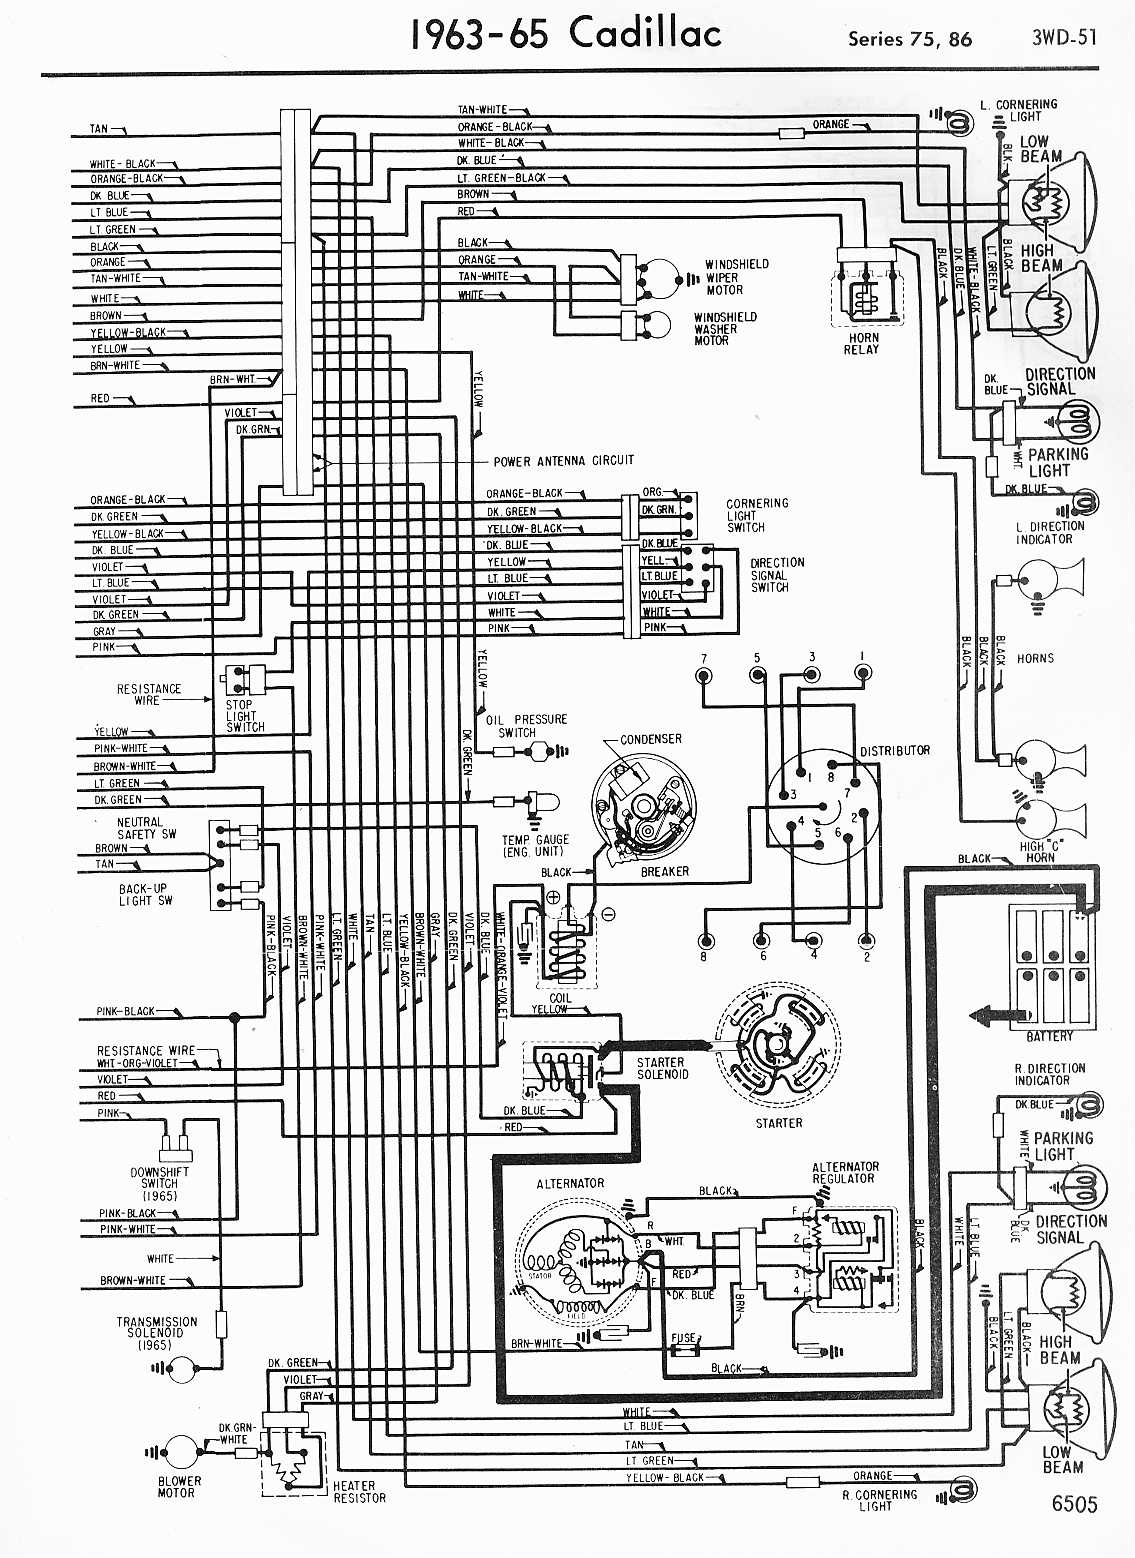 Cadillac Wiring Diagrams 1957 1965 1966 Gmc Dash Diagram Series 75 Right More Buick Ads